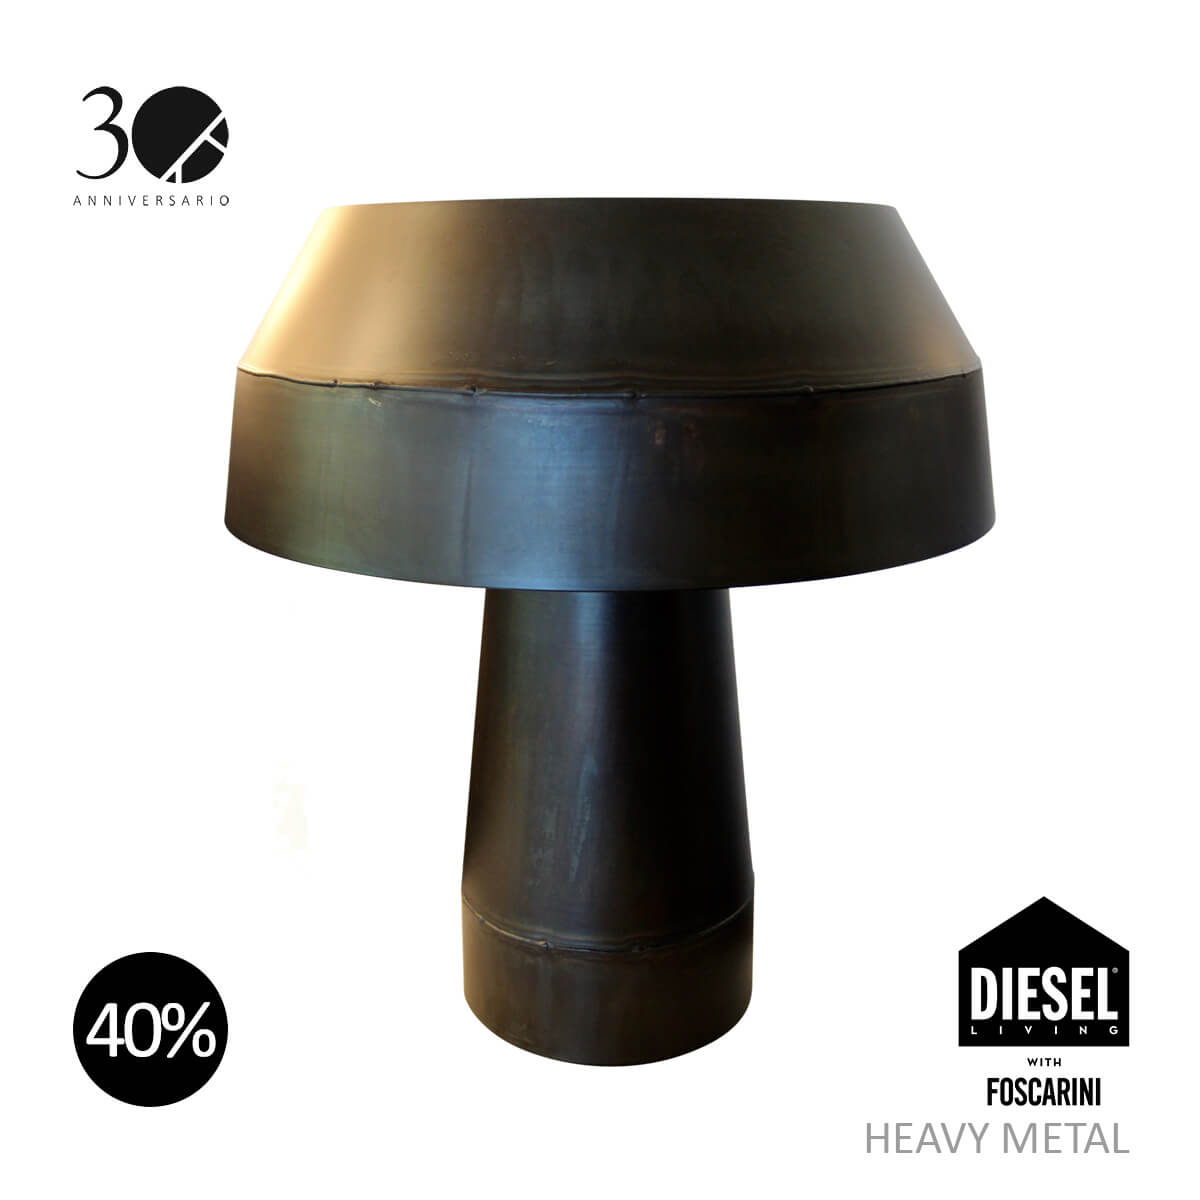 FOSCARINI-HEAVY-METAL-